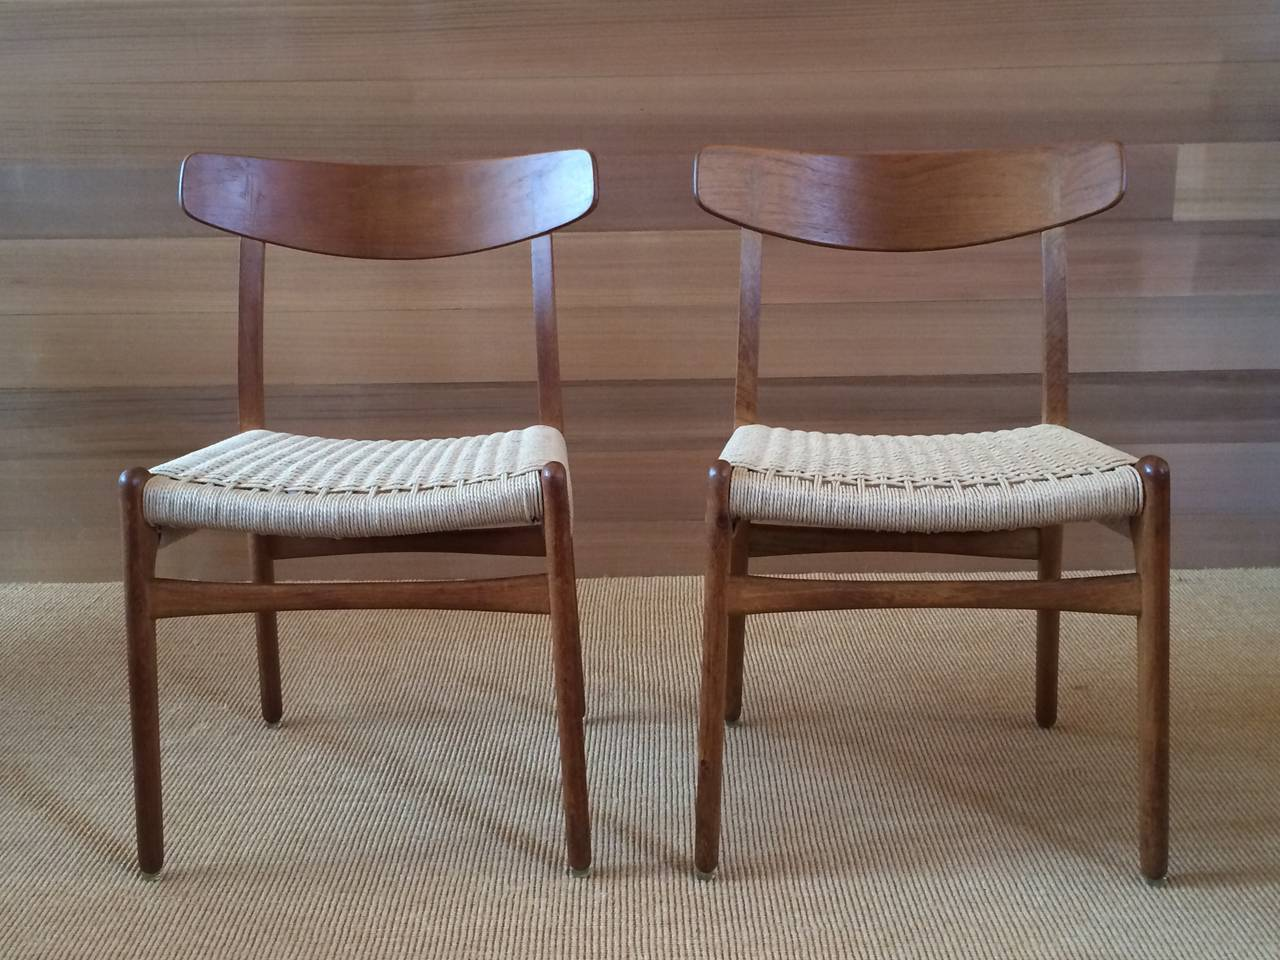 Mid-Century Modern Museum Quality Hans Wegner Chairs in Oak and Paper Cord, 1950 For Sale